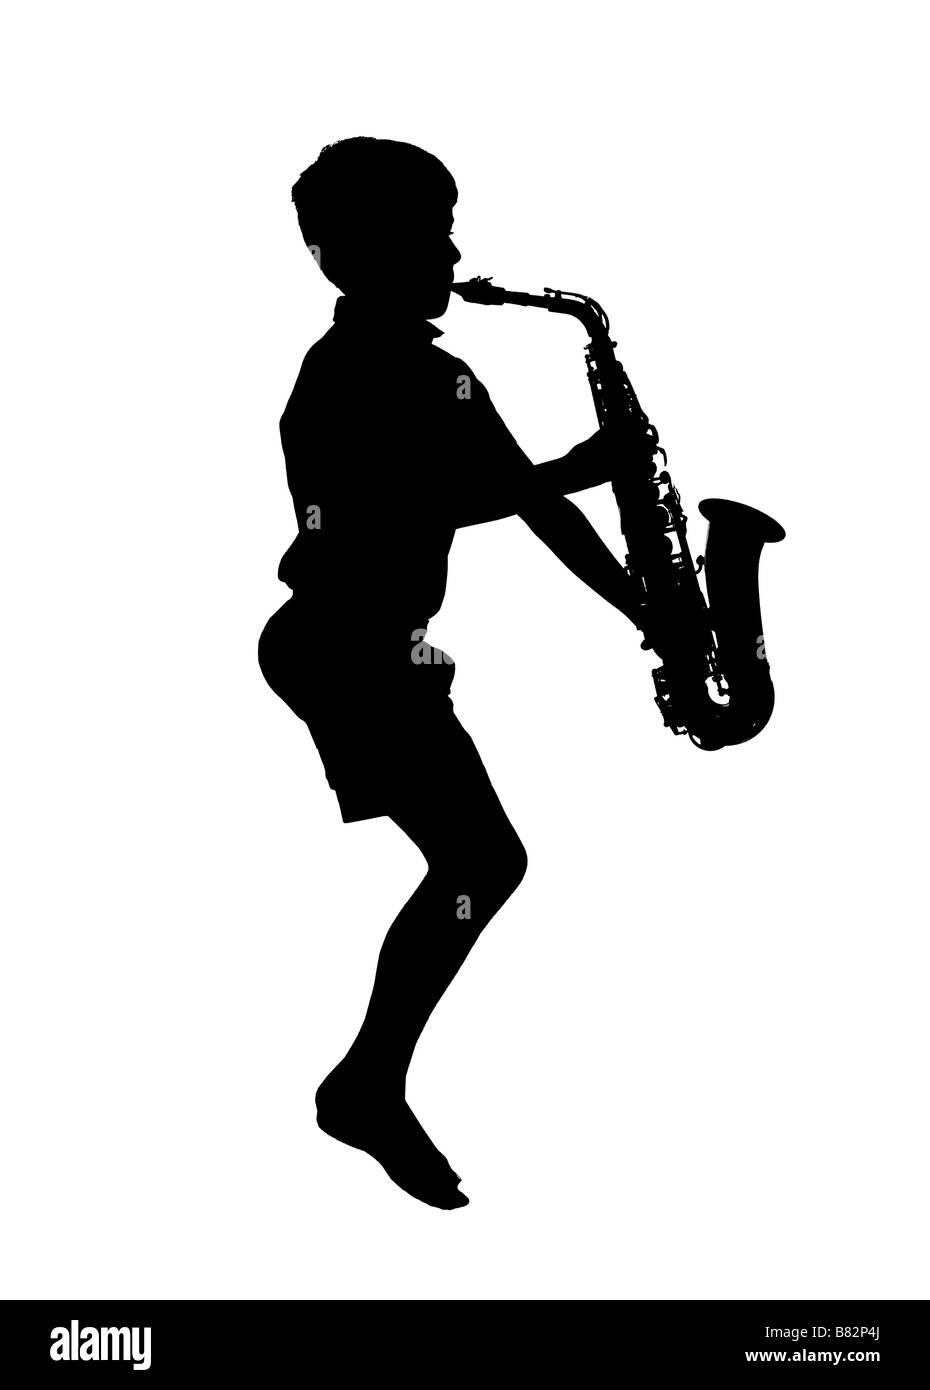 silhouette of boy playing saxophone - Stock Image